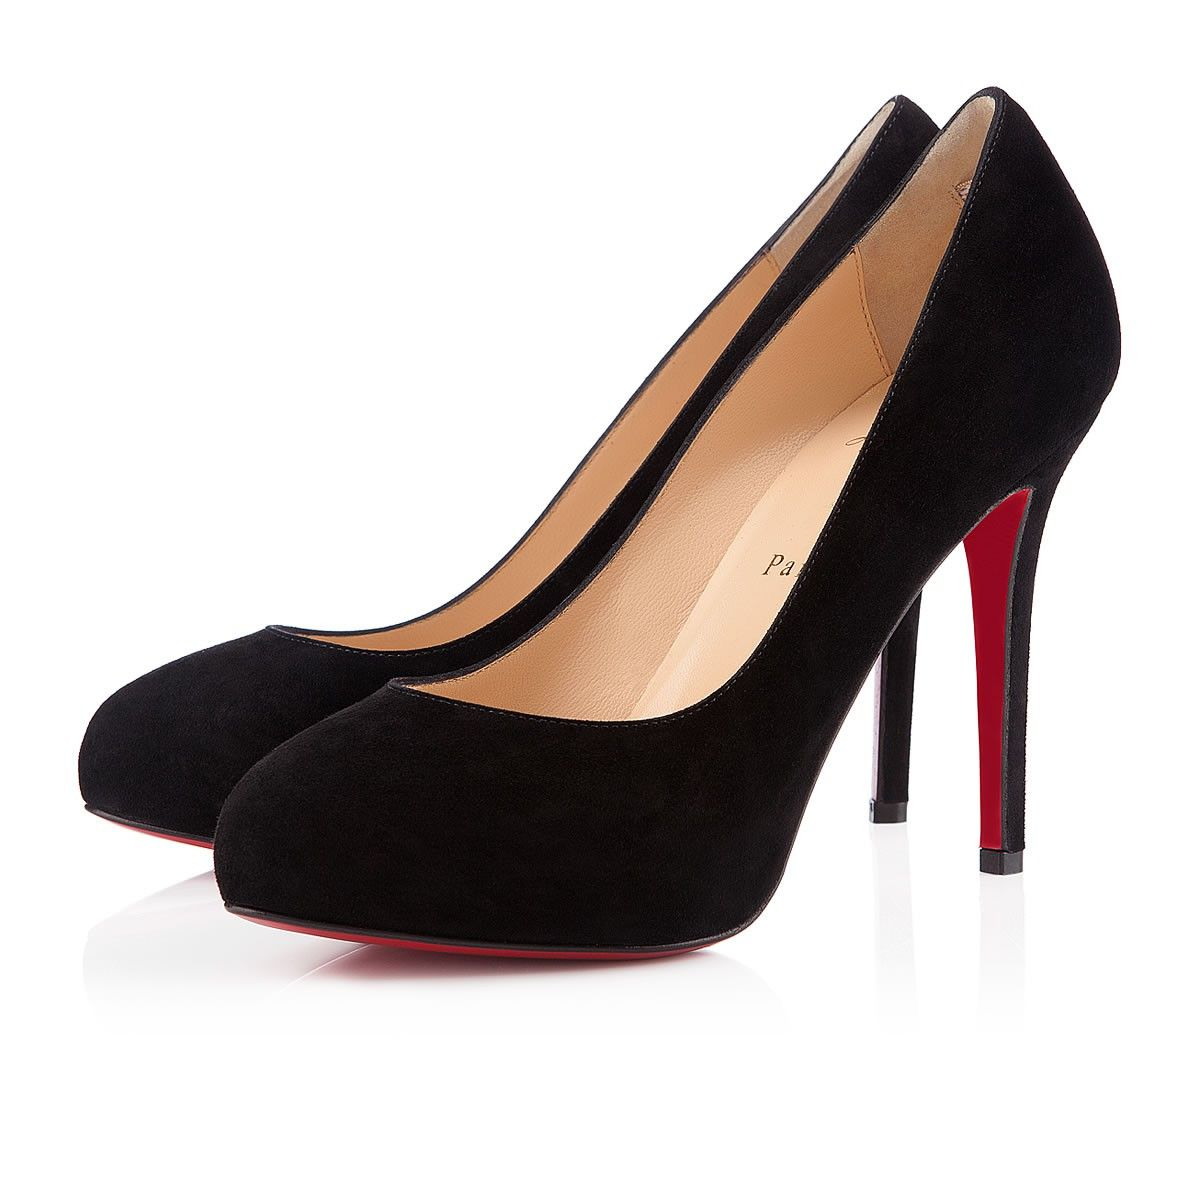 Christian Louboutin New Declic 120mm Suede Pumps Black